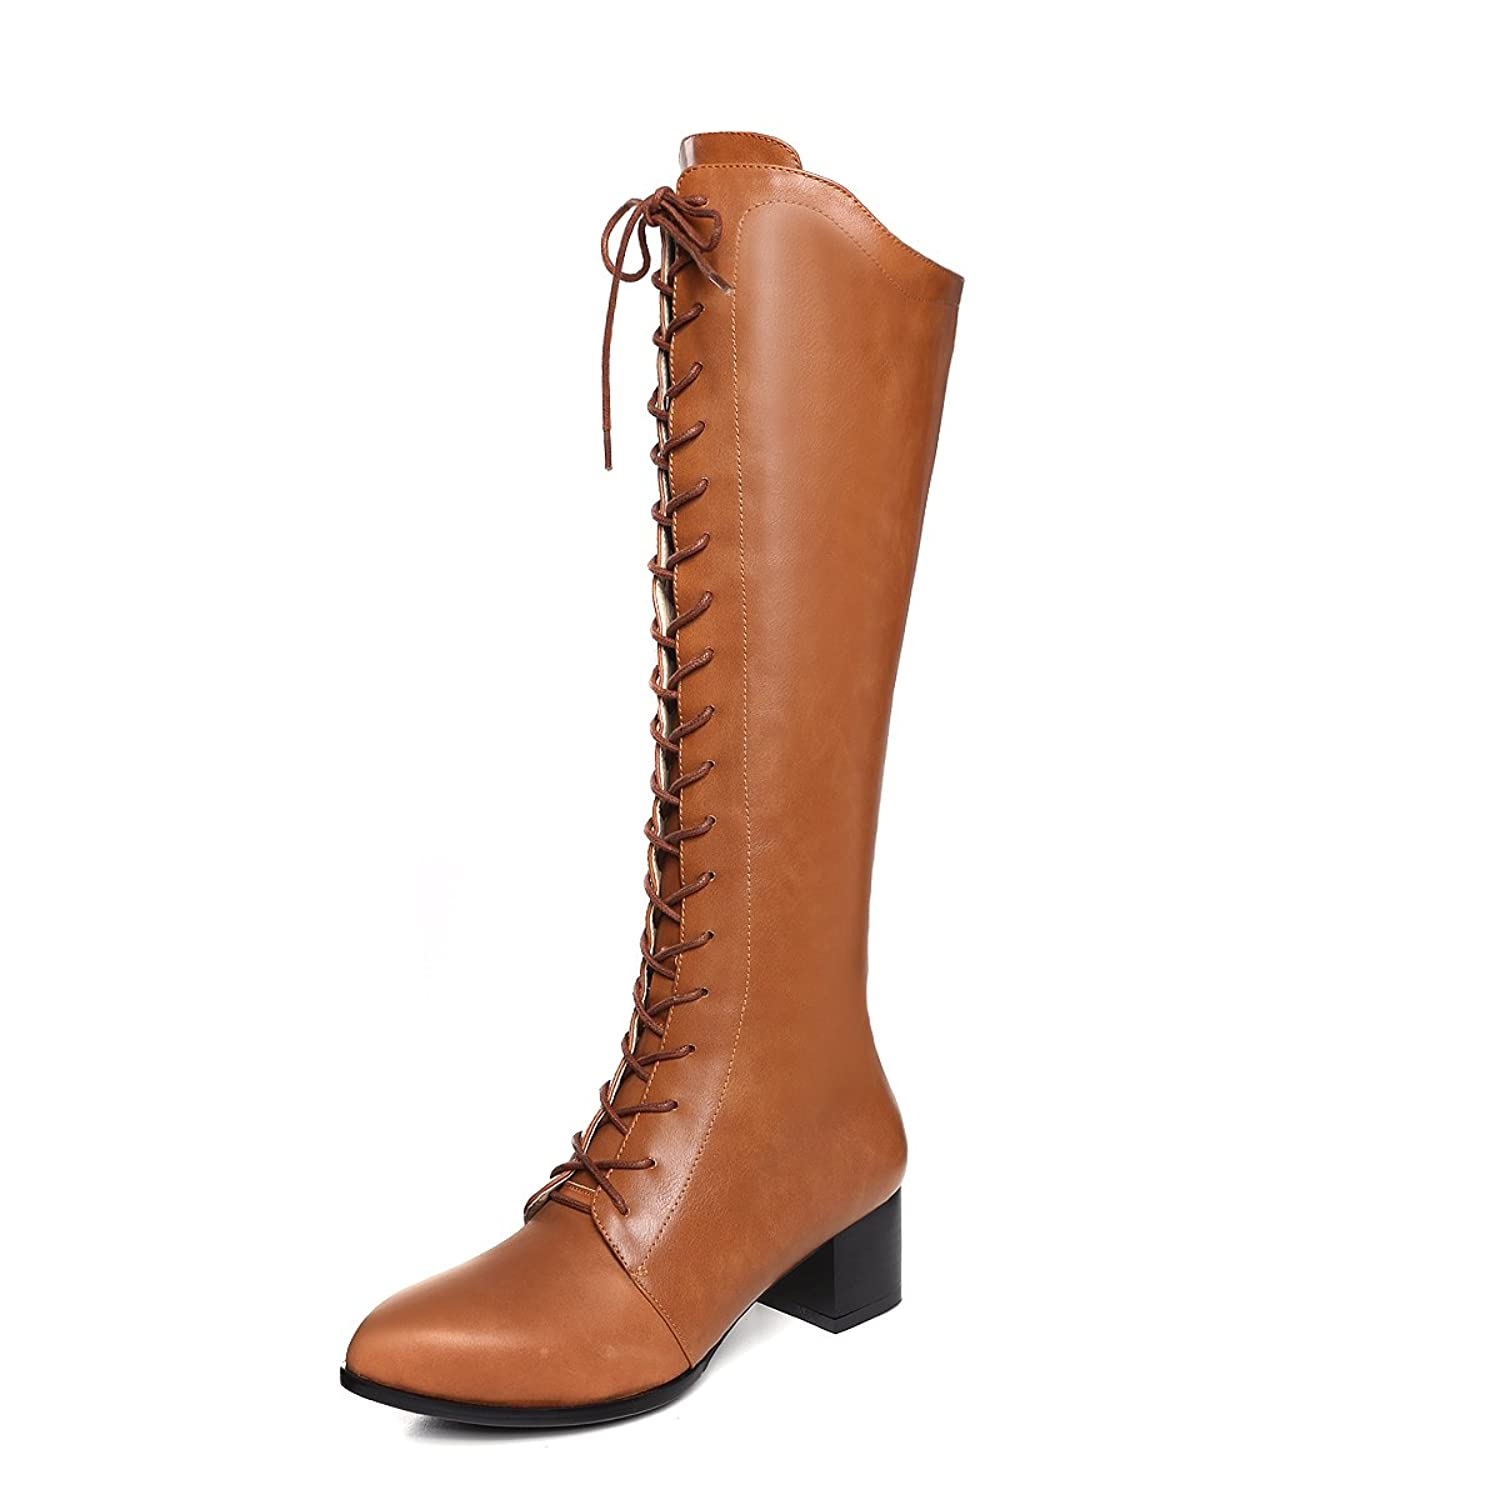 1930s Style Shoes – Art Deco Shoes NIQI Genuine Leather Womens Mid Heel Knee High Booties Side Zipper Combat Military Motorcycle Boots $89.00 AT vintagedancer.com